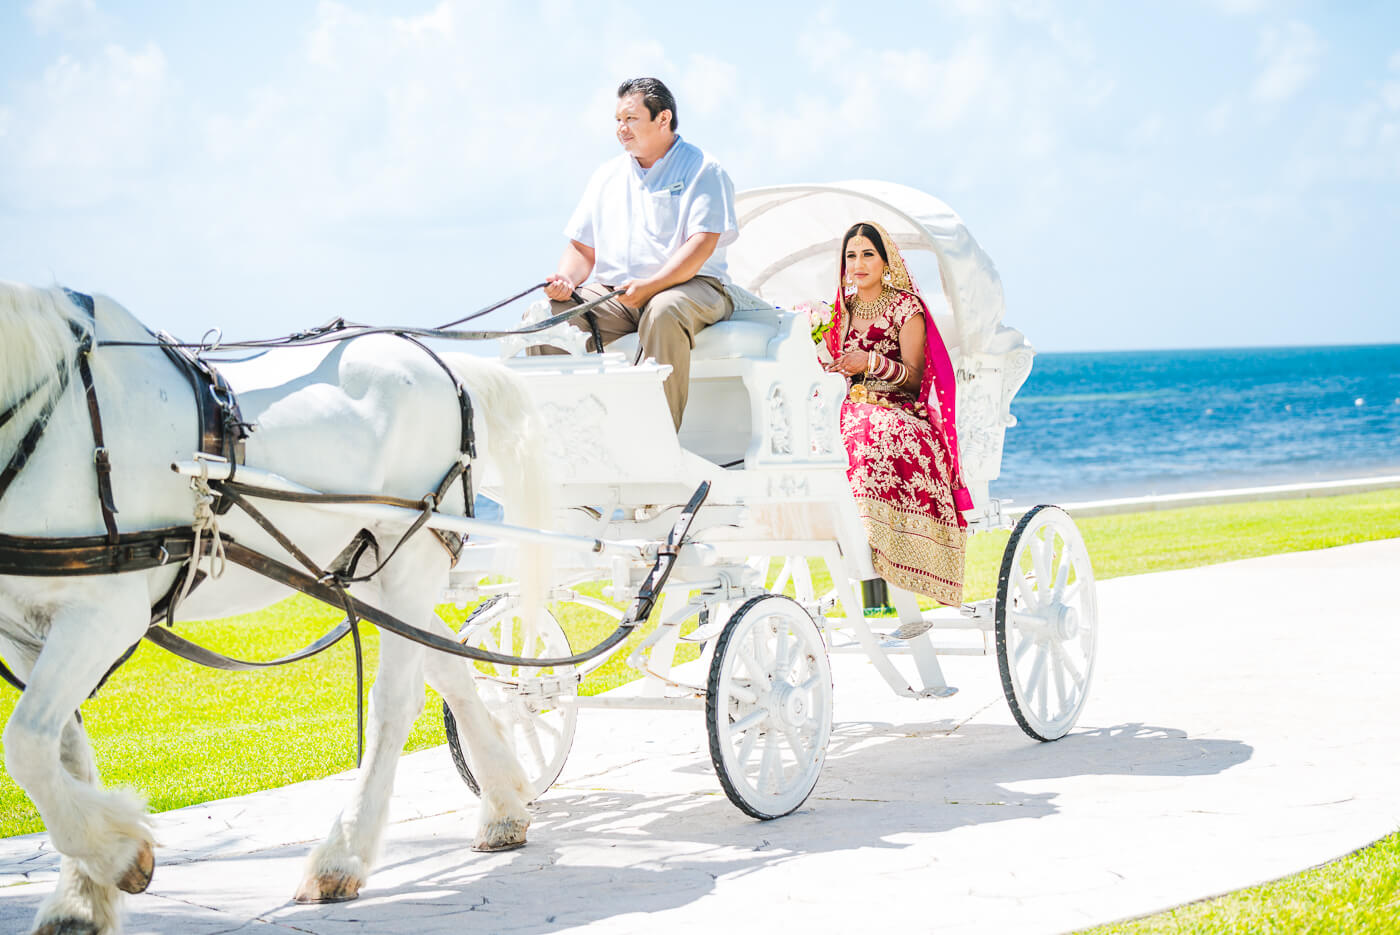 Moon Palace Cancun Mexico Punjabi wedding